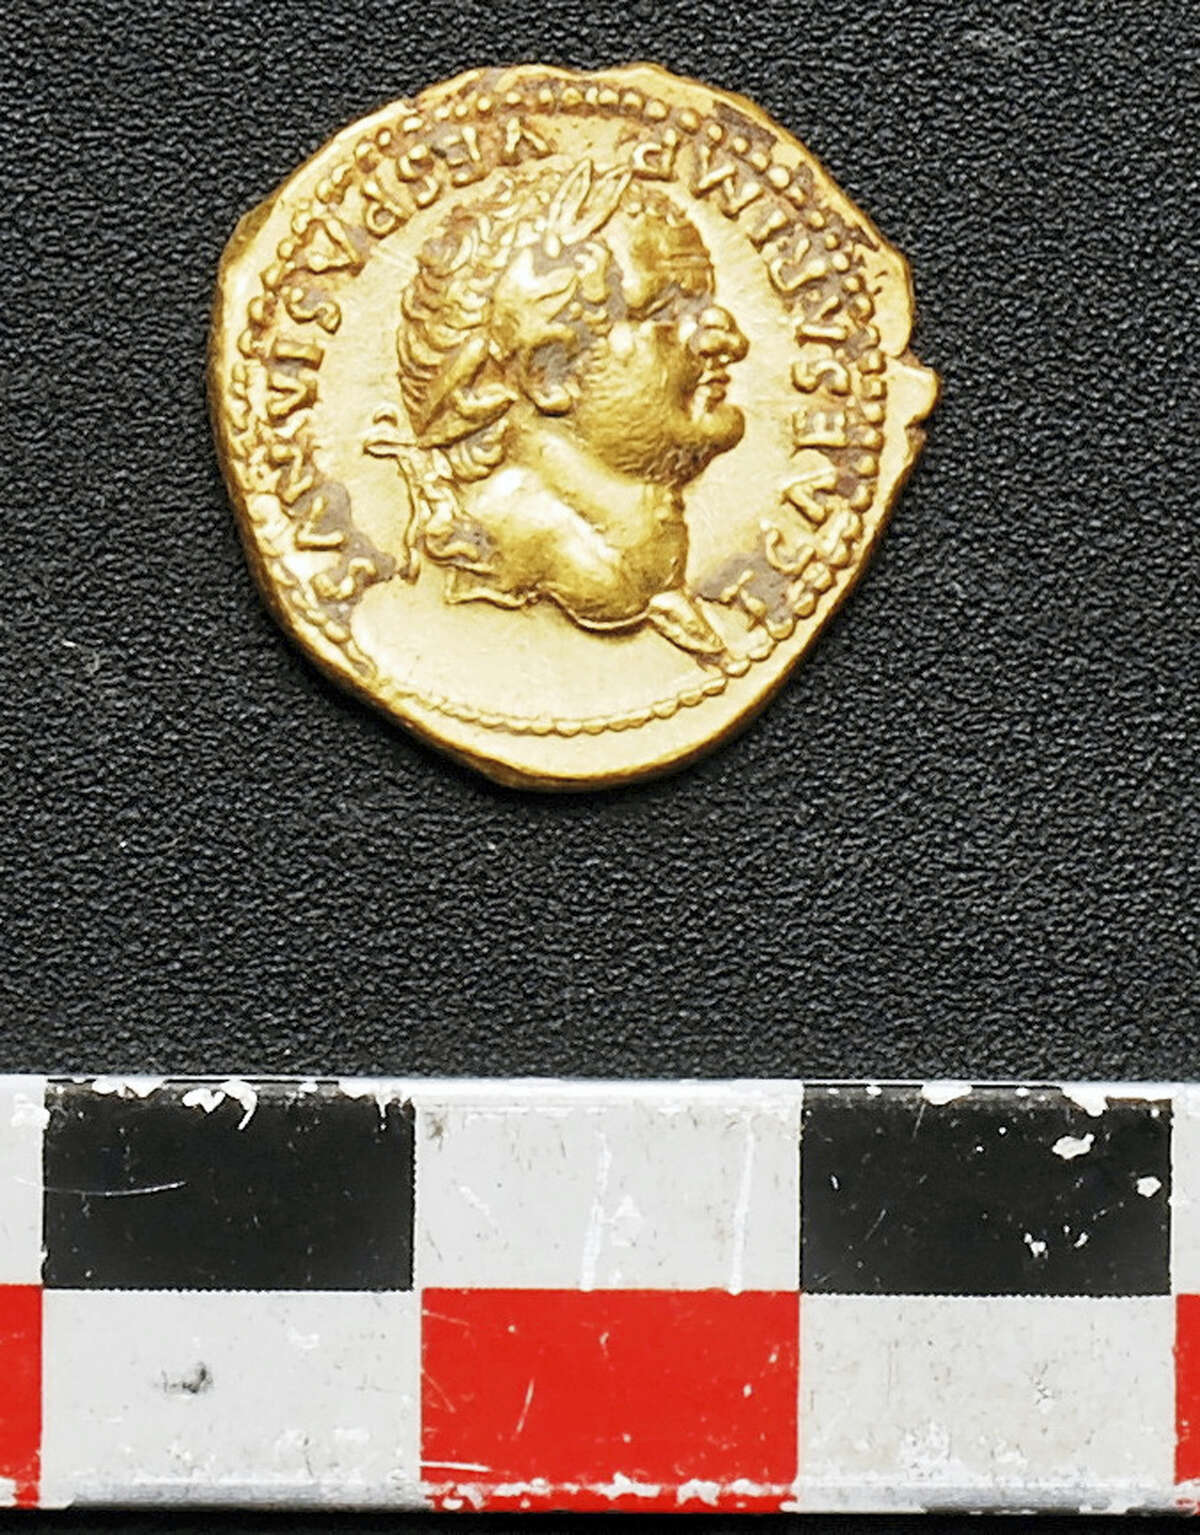 An undated picture made available by the Pompeii Archeological site Press Office, showing a gold coin recently discovered in Pompeii, near Naples, Italy. An Italian and French archaeologist team, digging in the outskirts of Pompeii, have discovered four skeletons and gold coins in the ruins of an ancient shop. Pompeii archaeological site officials said Friday, June 24, 2016, the skeletons are those of young people, including an adolescent girl, who perished in the back of the shop when Mount Vesuvius erupted in 79.